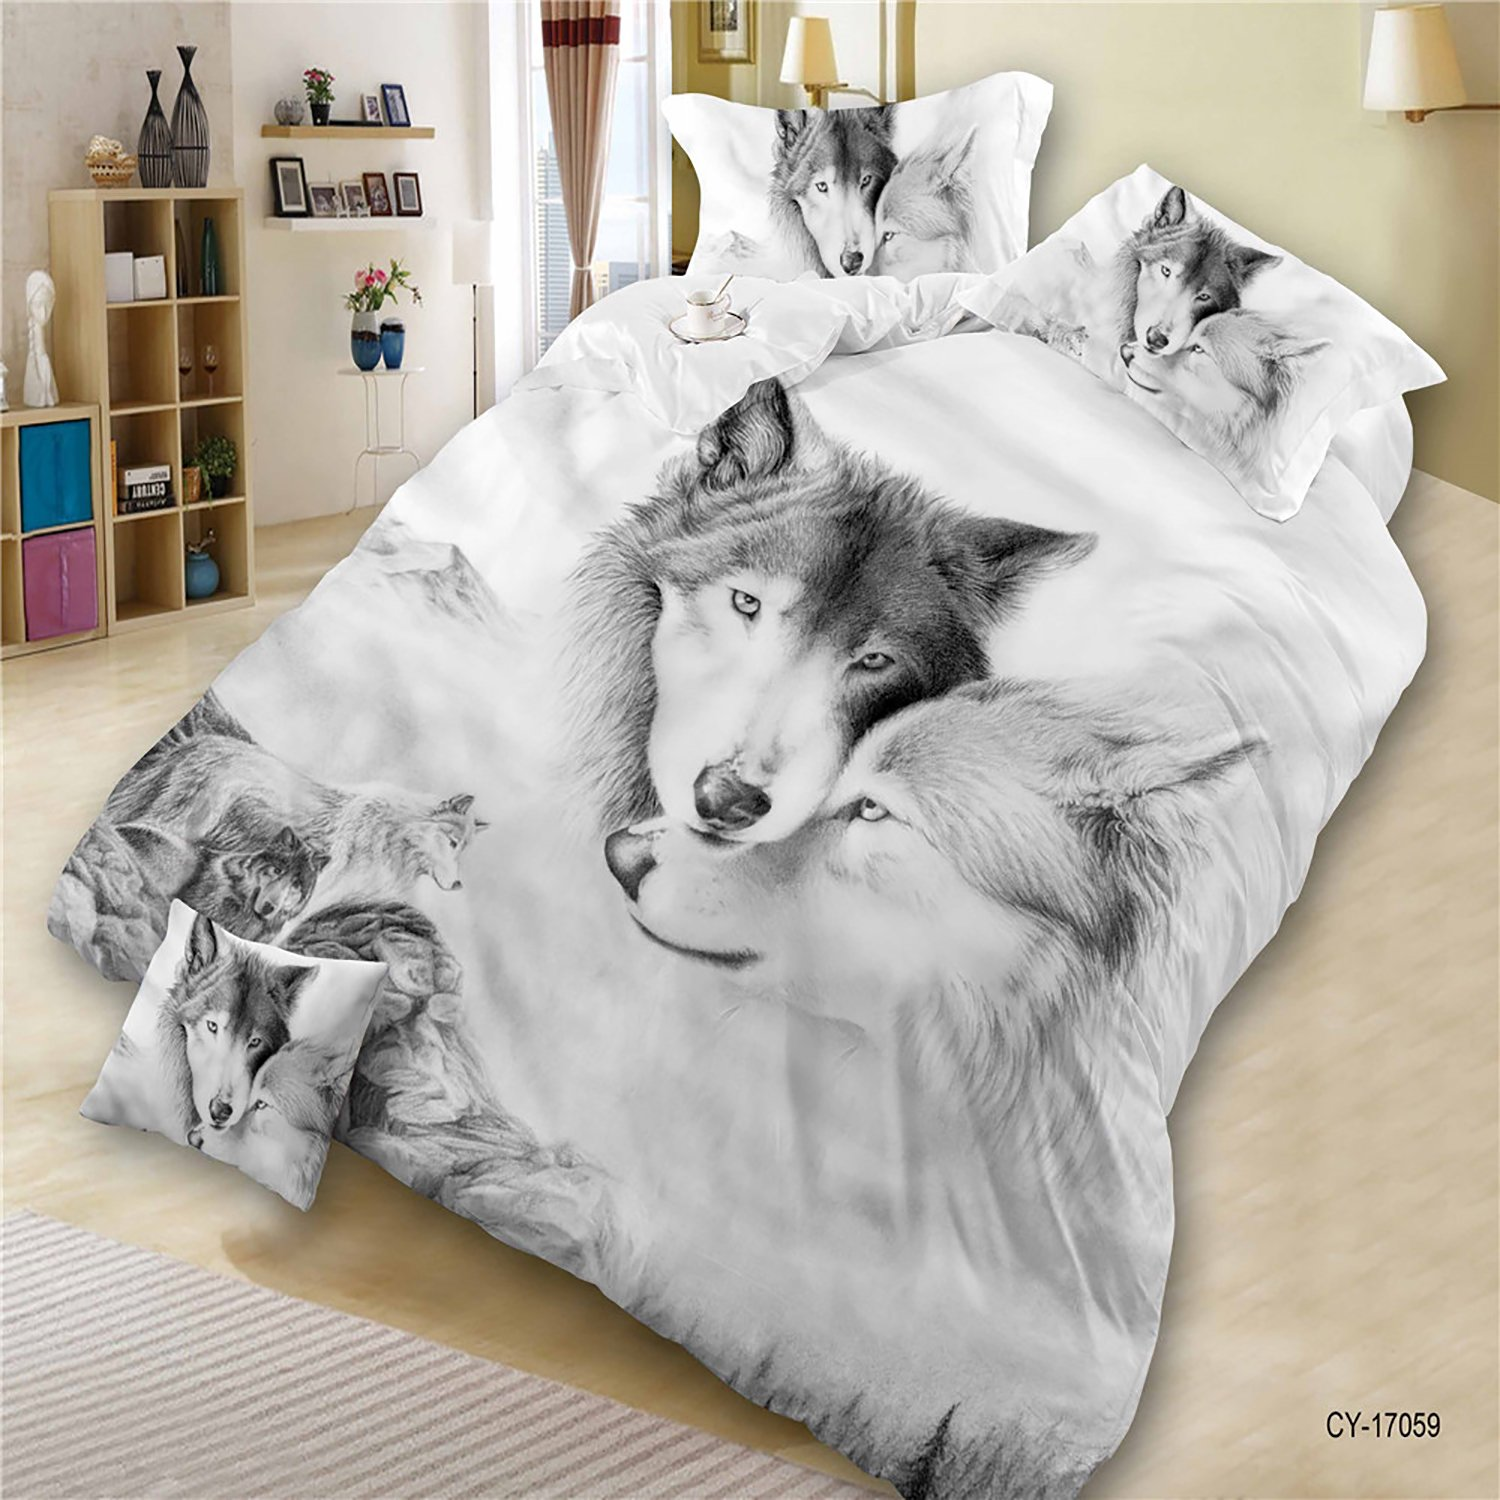 LightInTheBox Duvet Cover Sets 3D Wolf Reactive Print Polyester 4pcs (1 Duvet Cover, 1 Flat Sheet, 2 Shams) S624549900002#DHL#wh=24